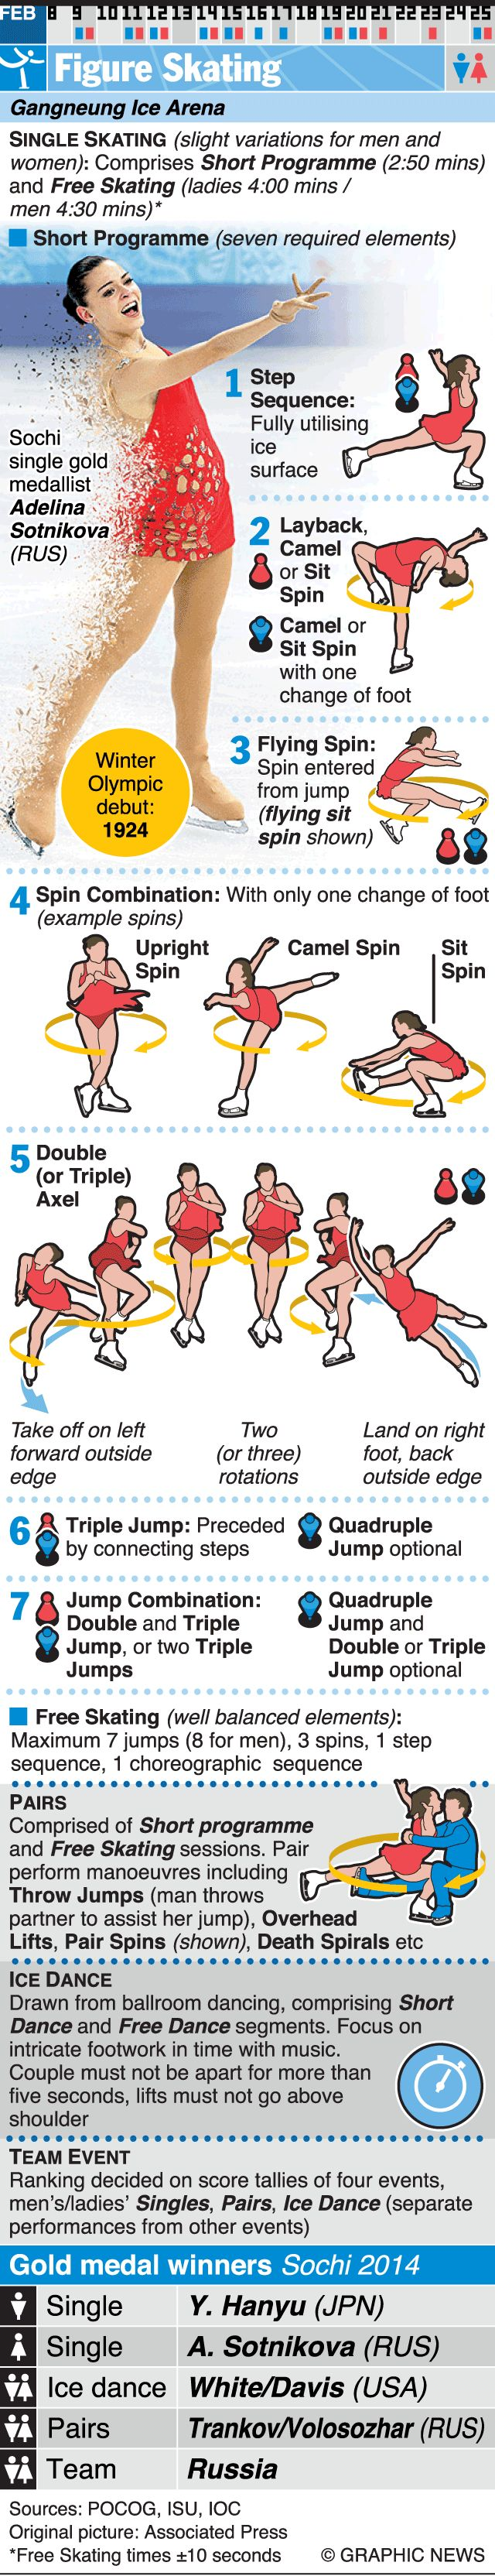 February 9-25, 2018 -- Figure Skating is one of 24 sporting competitions of the 2018 Winter Olympic Games in Pyeongchang 2018, South Korea. Graphic explains figure skating.